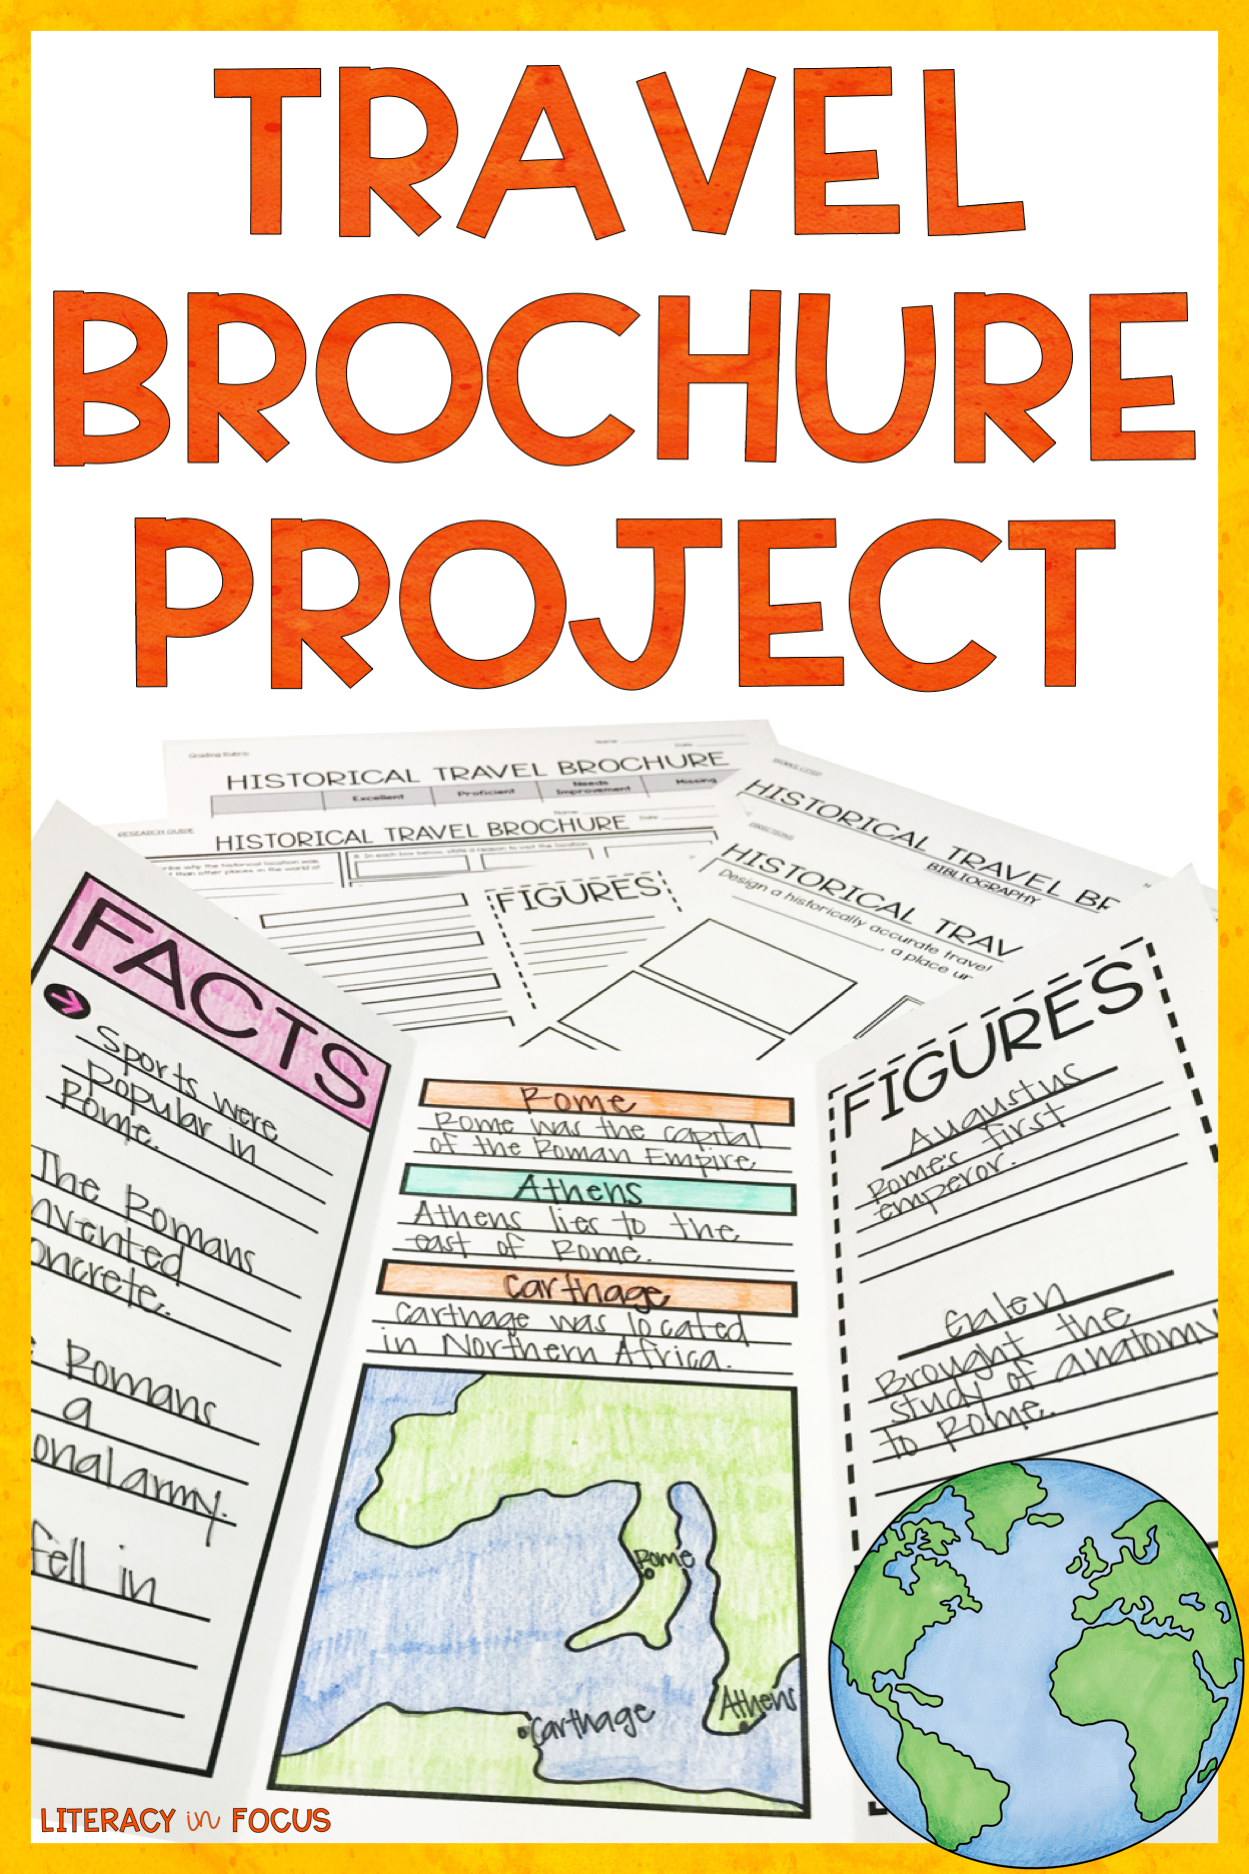 travel brochure template and research project literacy in focus